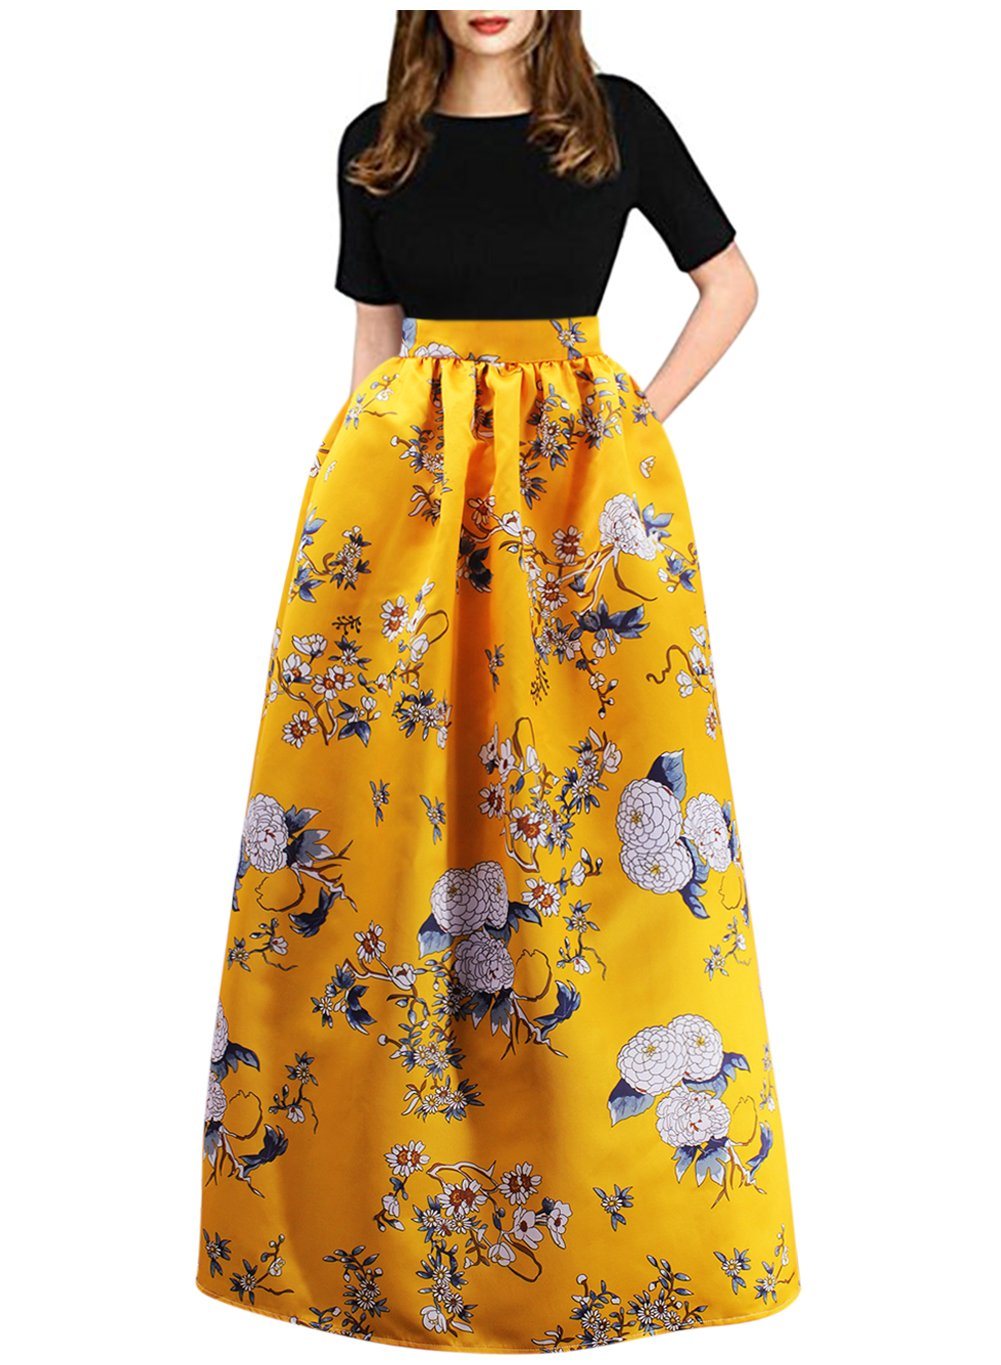 Aibearty Women Fashionable Elastic Floral Print High Waist Long Maxi Skirts Yellow 2XL